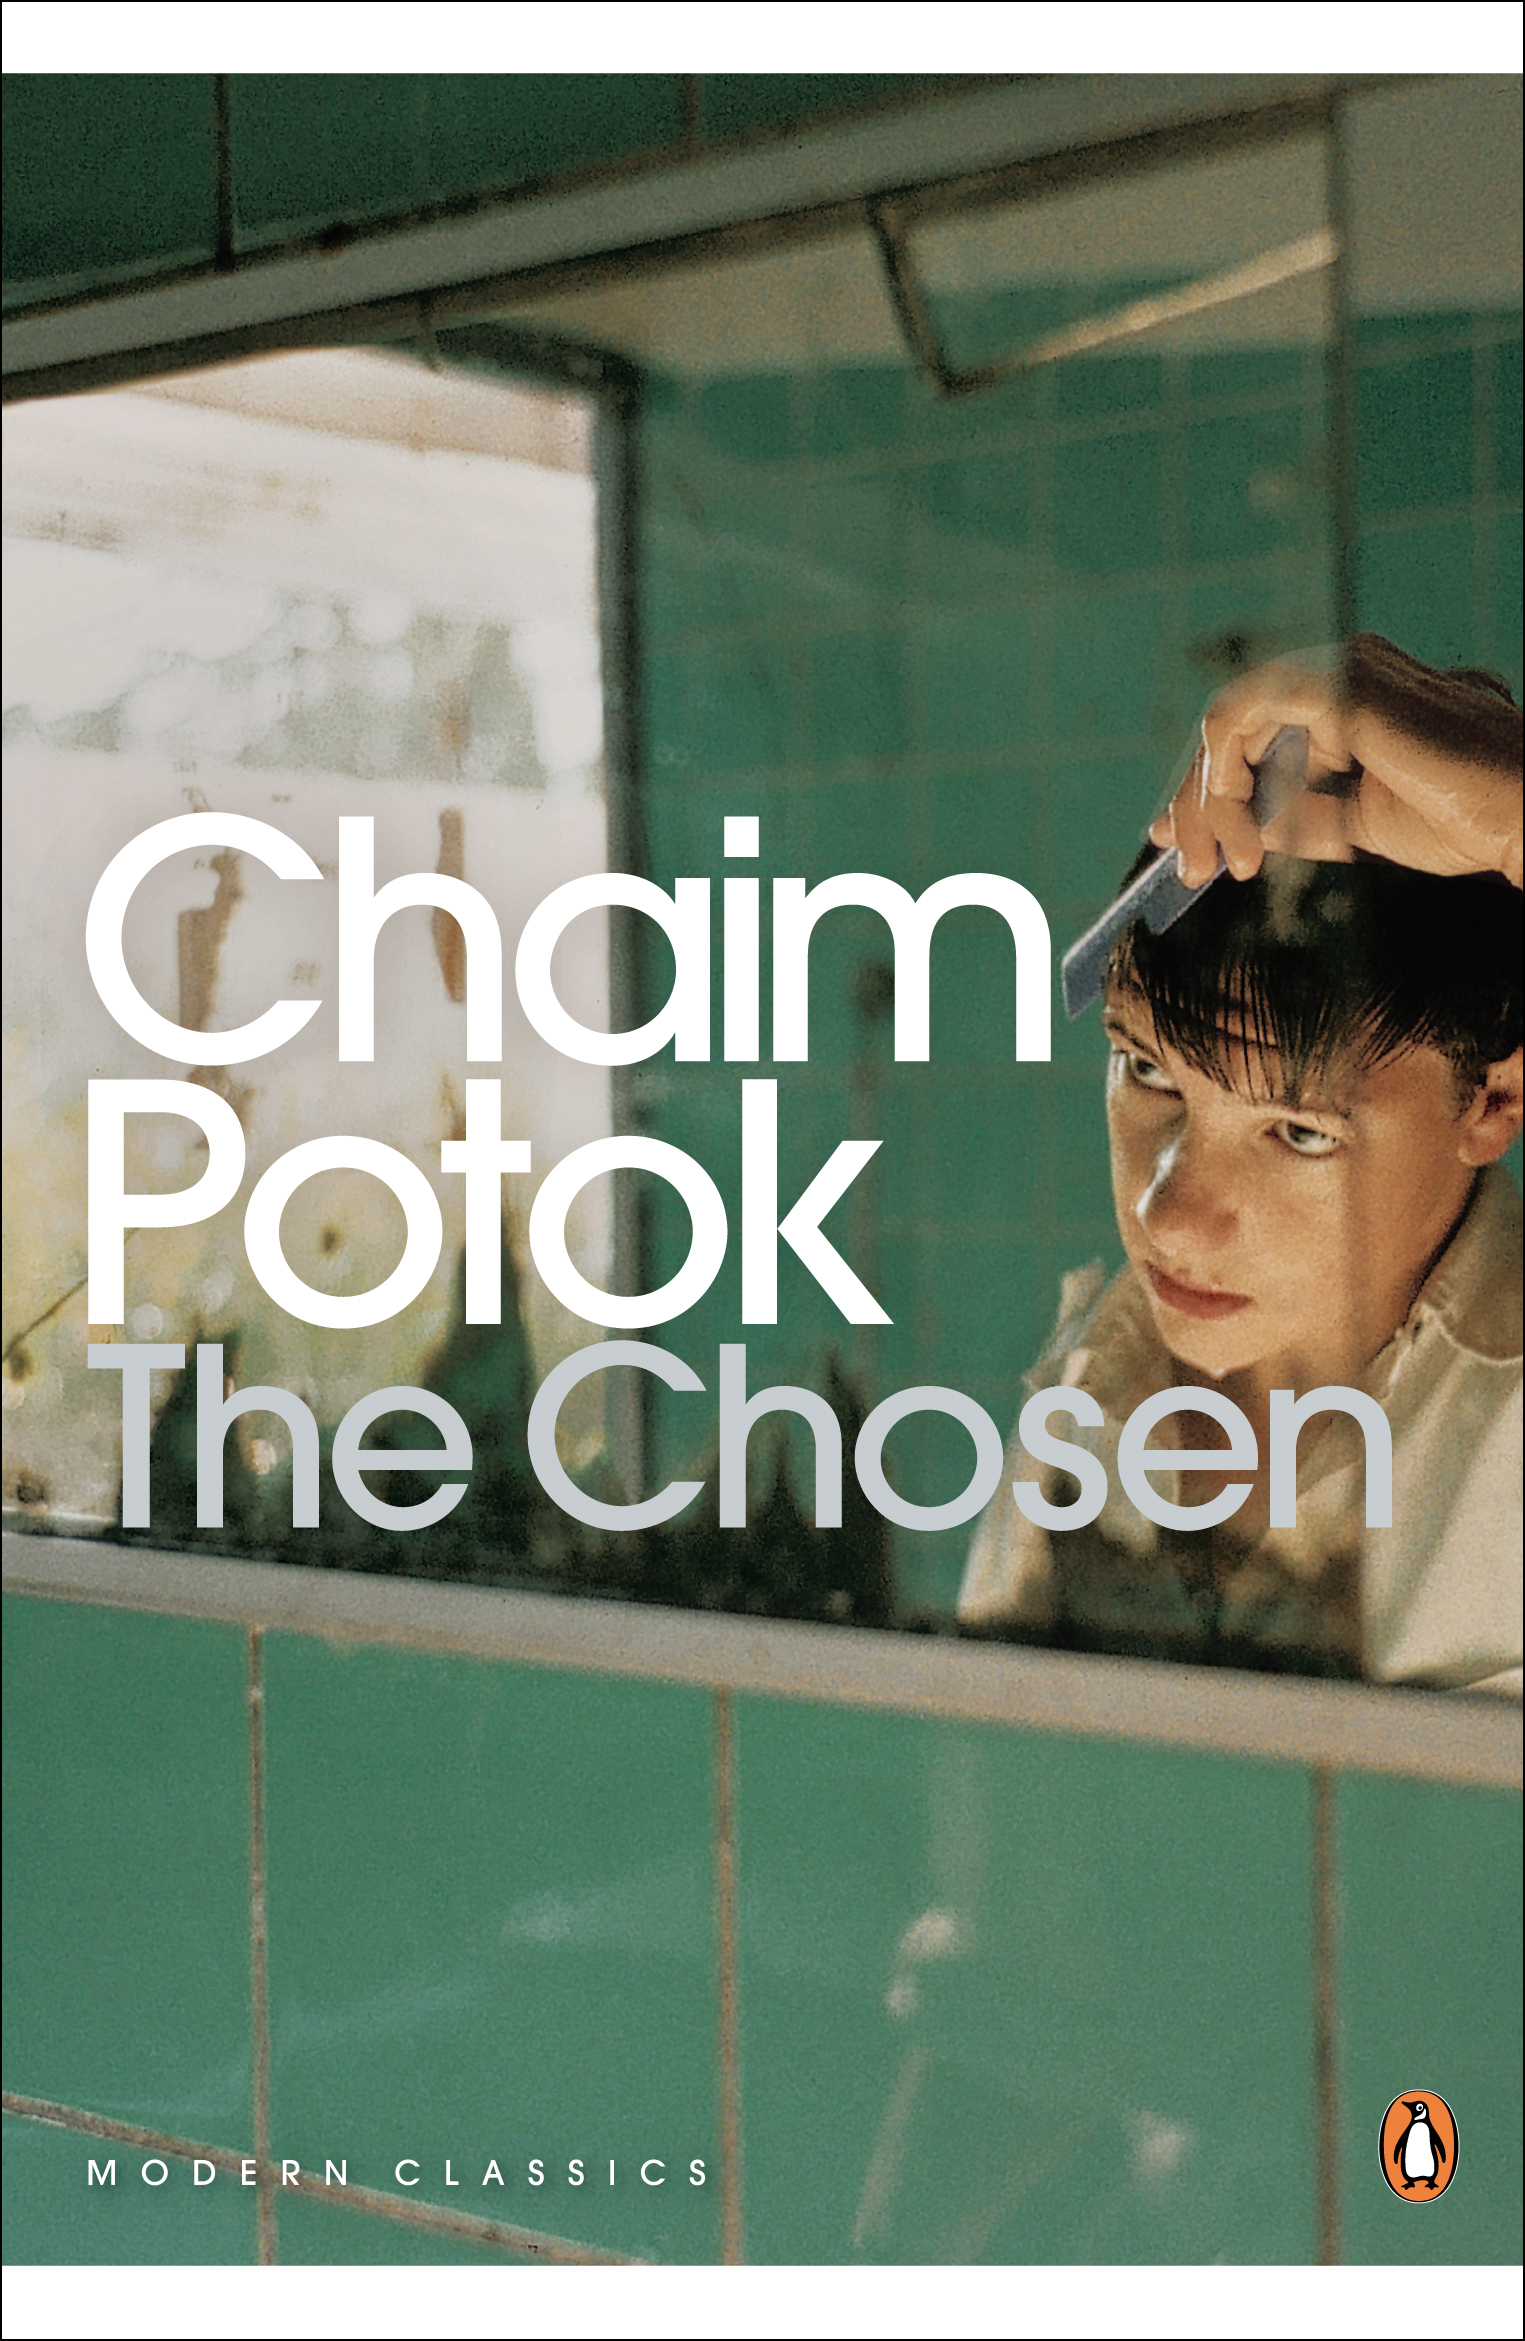 an analysis of the development in the chosen by chaim potok The chosen study guide contains a biography of chaim potok, literature essays, quiz questions, major themes, characters, and a full summary and analysis.